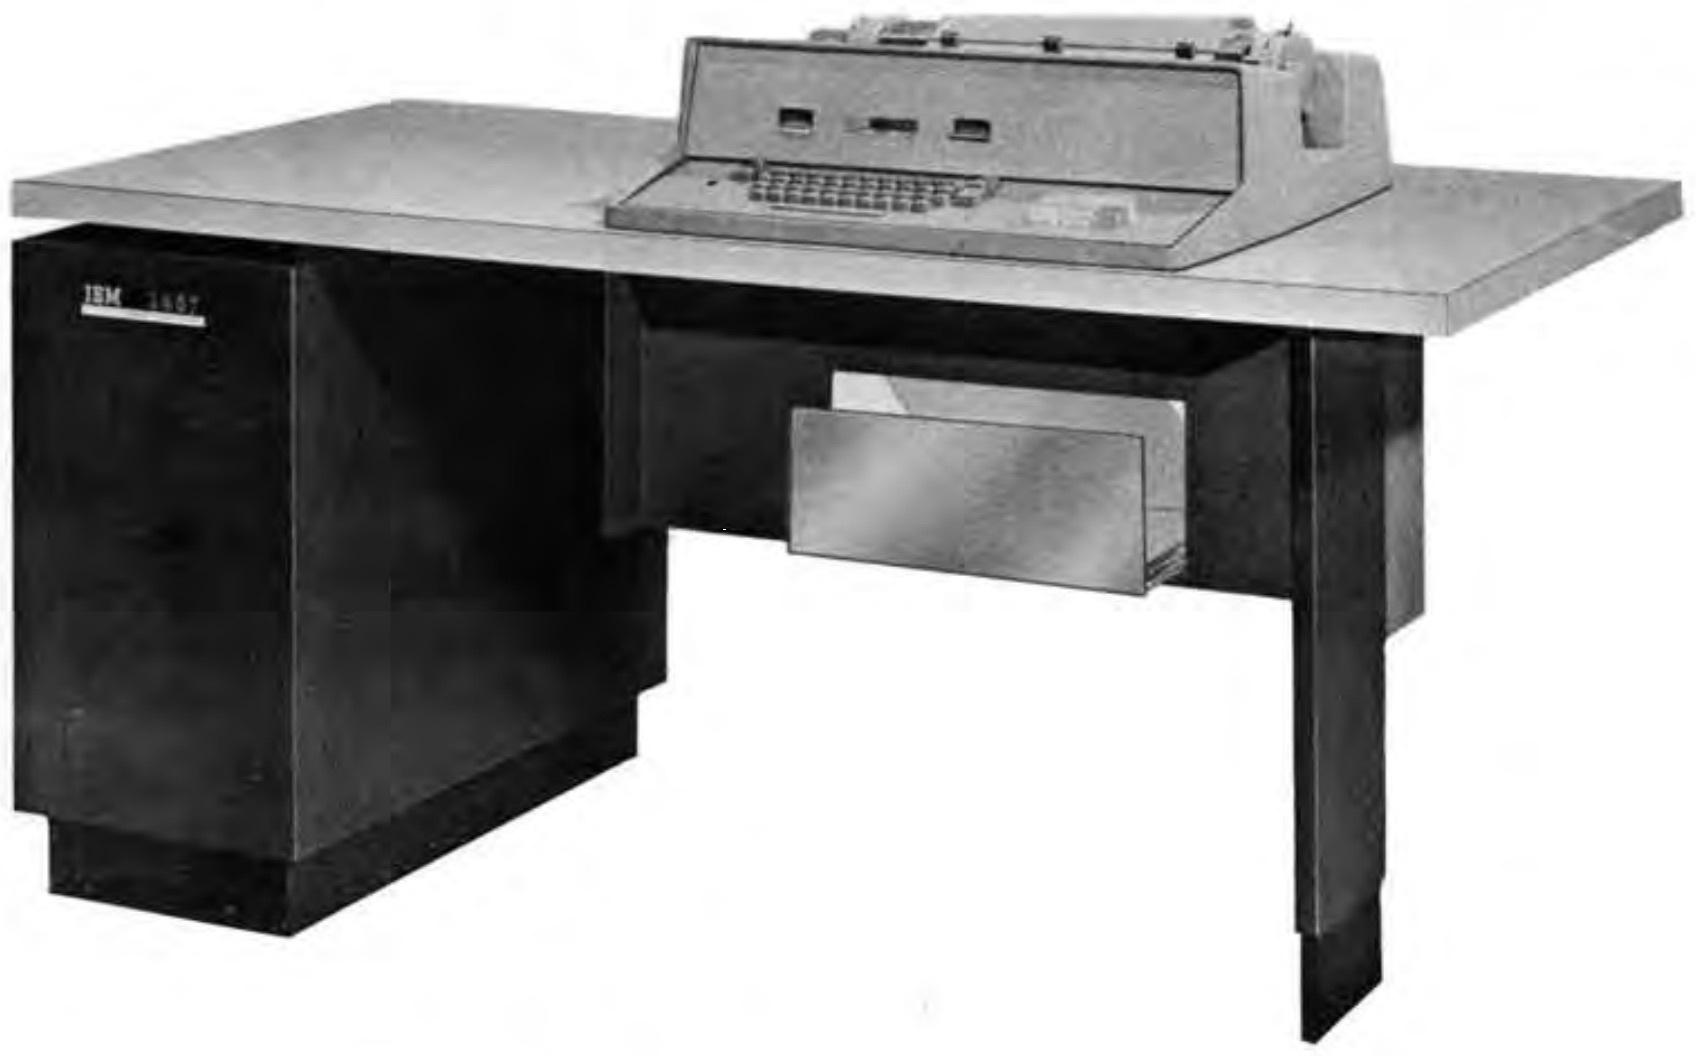 IBM 1407 Control Inquiry Station - Picture: Reference Manual IBM 1401 Data Processing System. IBM. 1962.